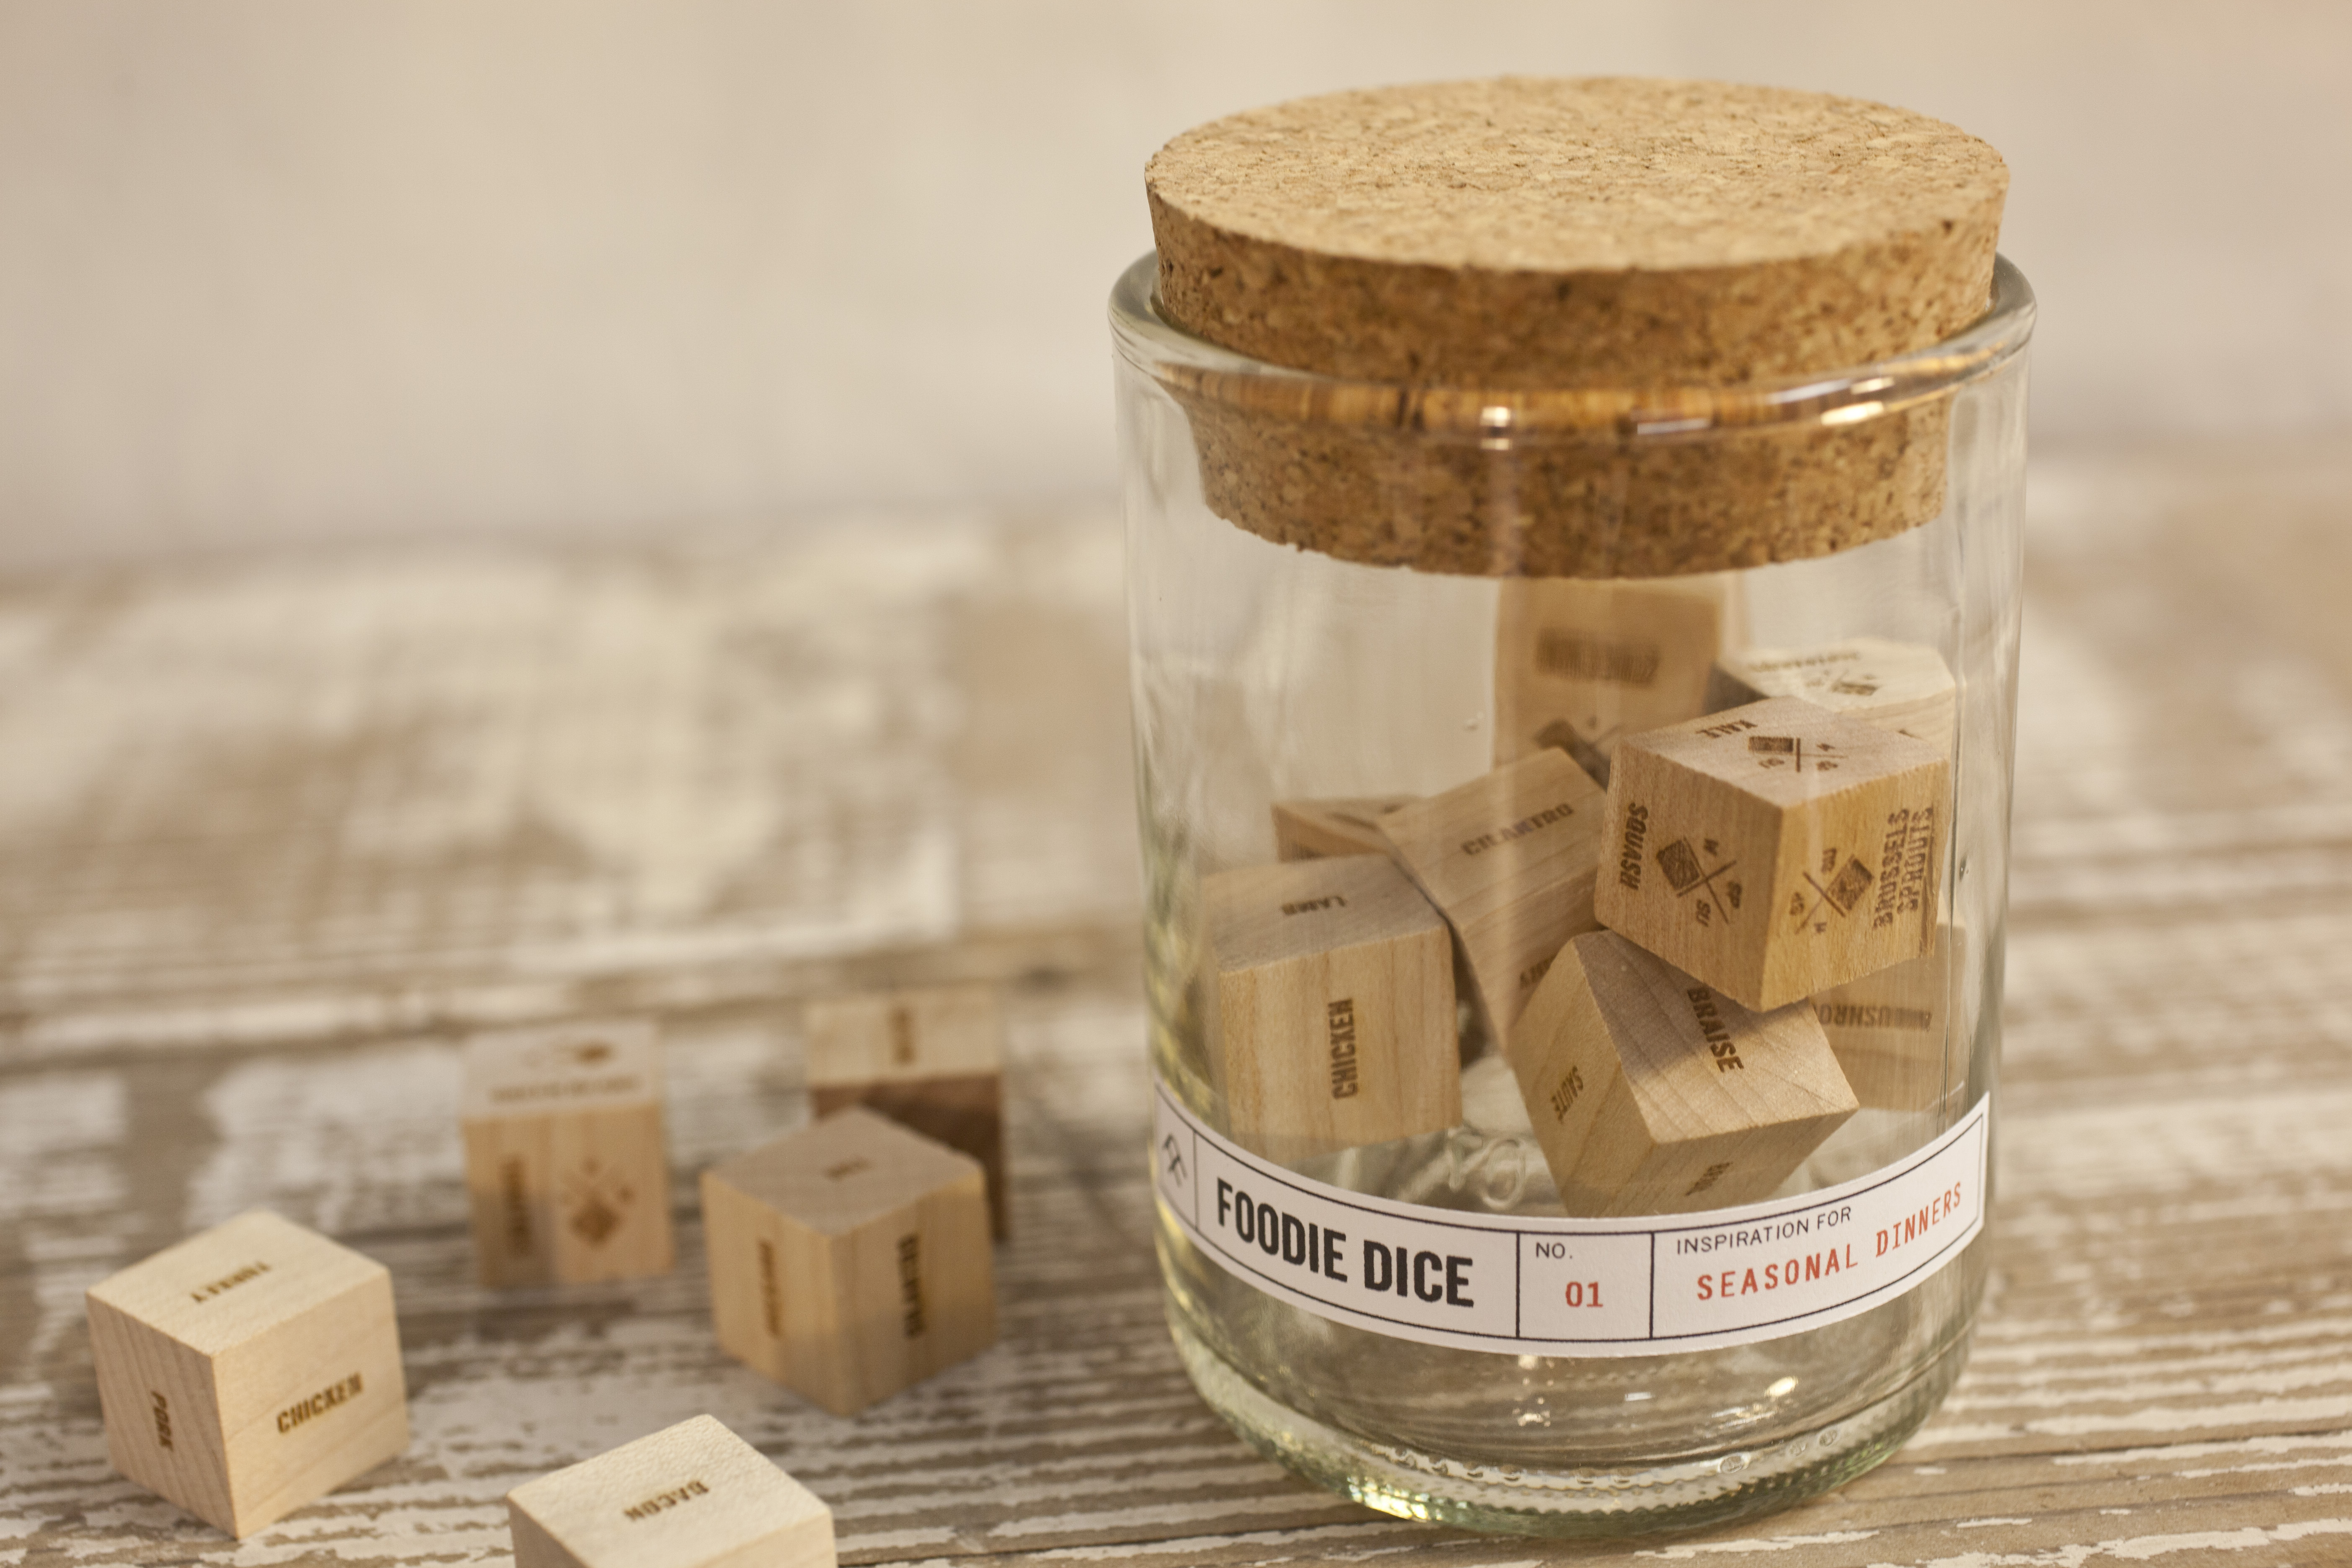 Foodie Dice: It's time to take a gamble on dinner